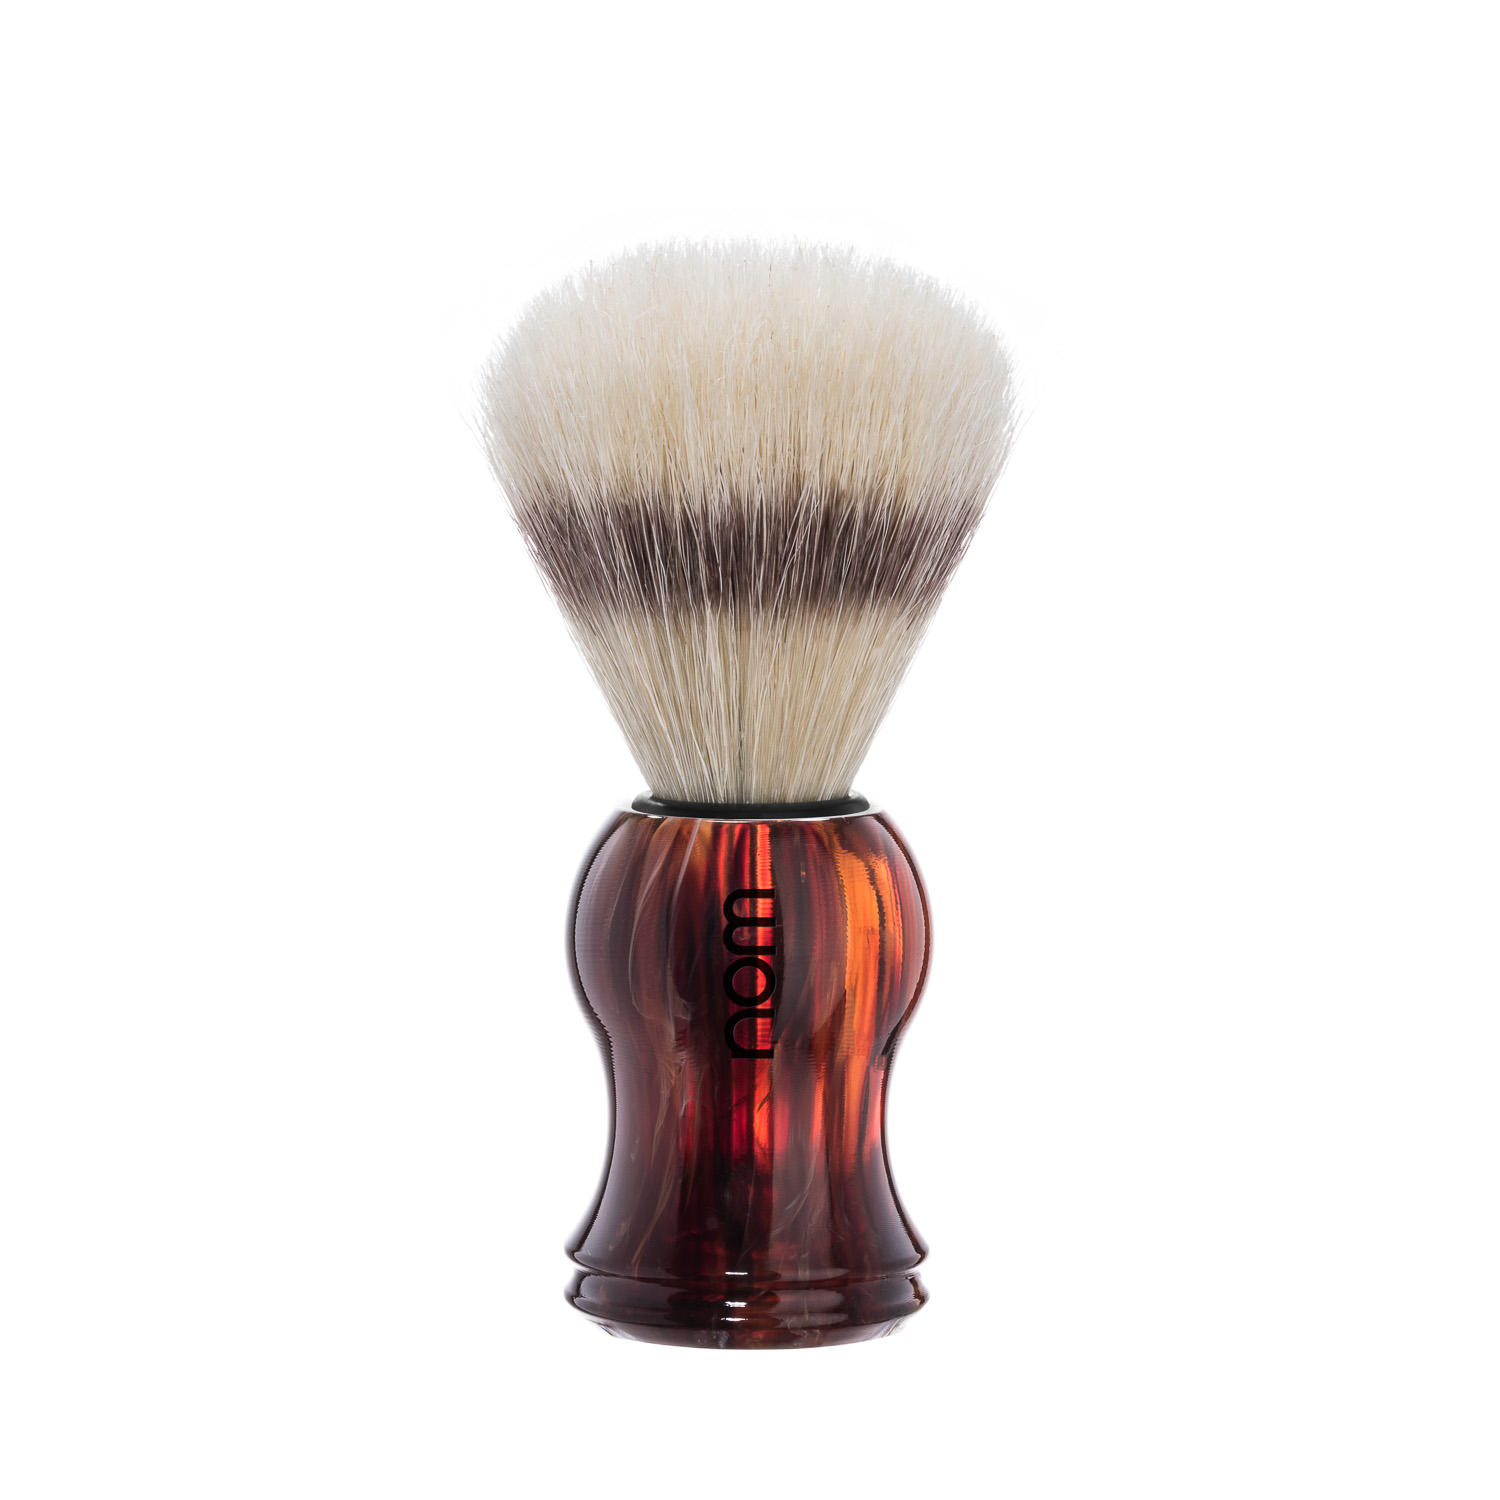 GUSTAV41HA nom GUSTAV, havanna, pure bristle shaving brush